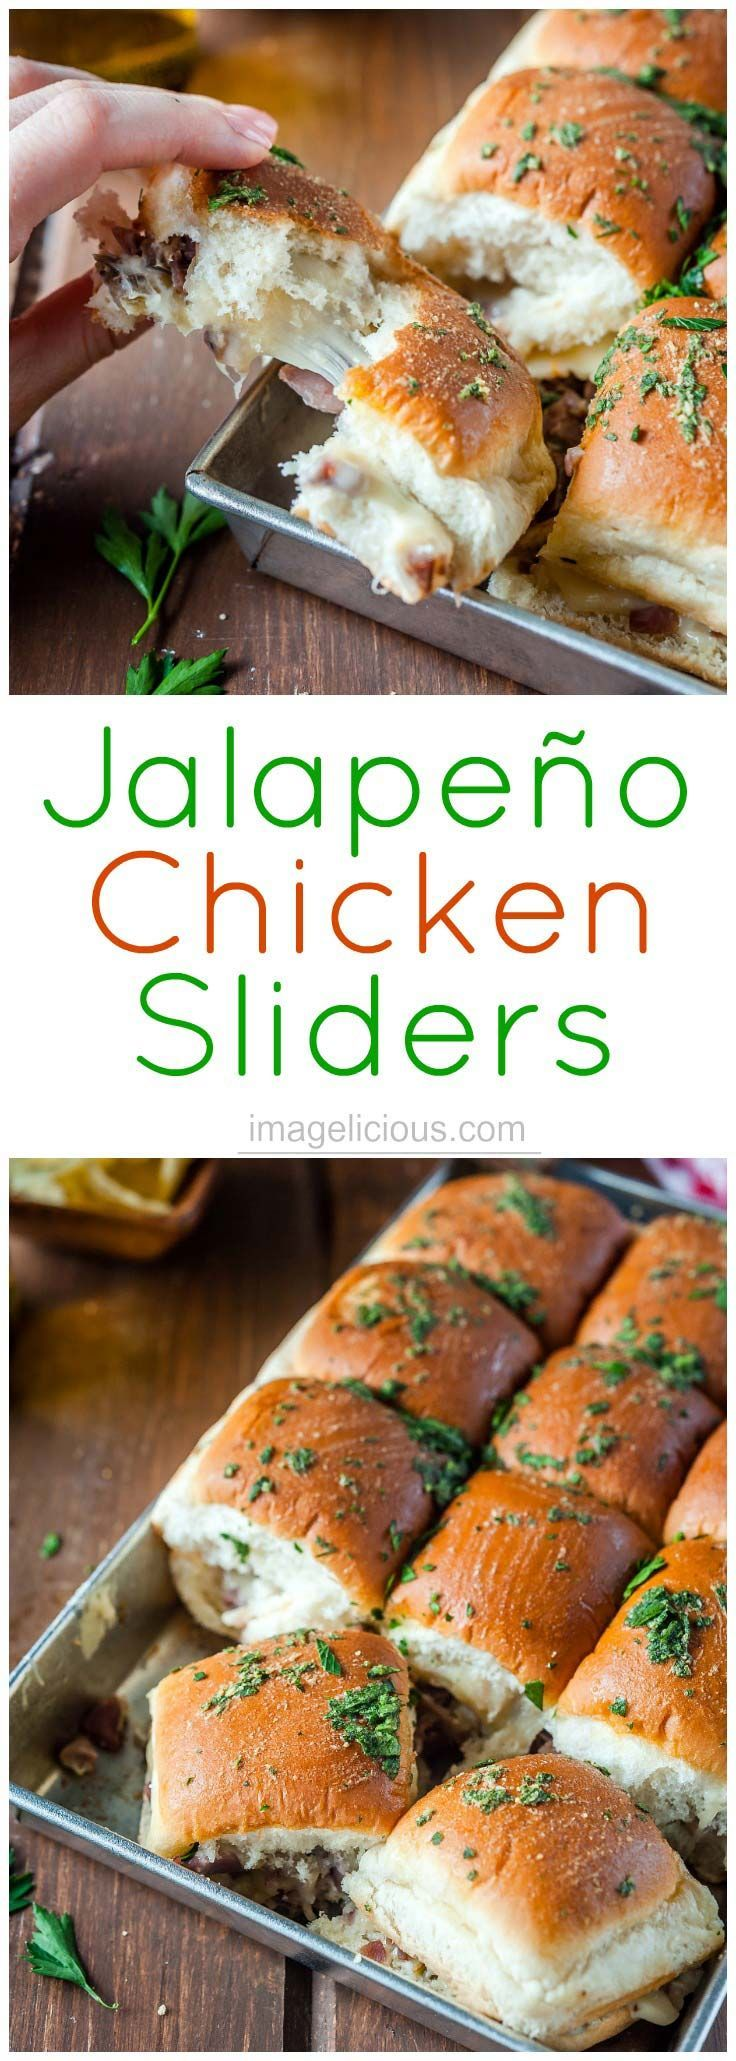 Jalapeno Chicken Sliders are an ultimate lunch, dinner, or party treat! Easy and quick to make with leftover chicken. Cheesy, salty, spicy, delicious | Imagelicious